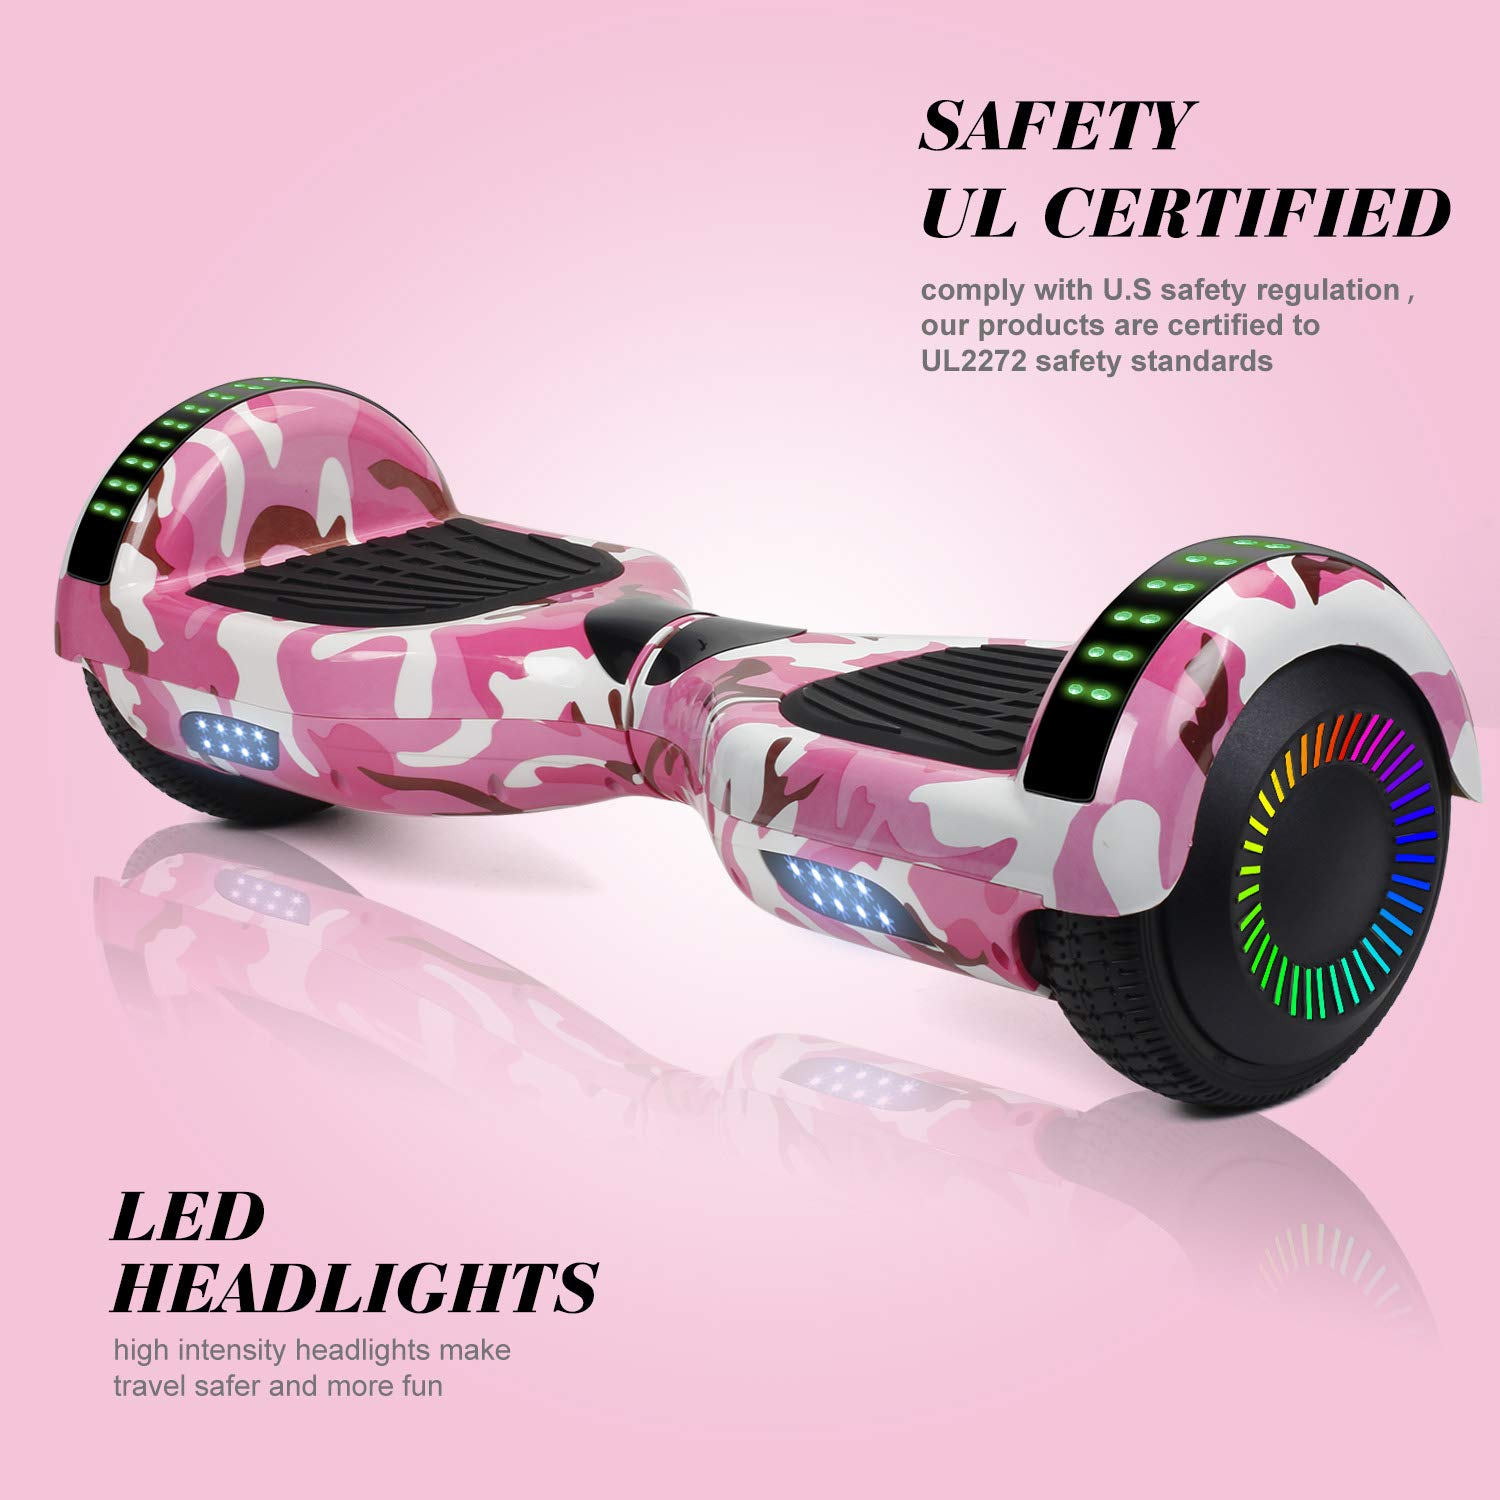 """SWEETBUY Hoverboard UL 2272 Certified 6.5"""" Two-Wheel Self Balancing Electric Scooter with LED Light Flash Lights Wheels RED (free carry bag) by SWEETBUY (Image #3)"""